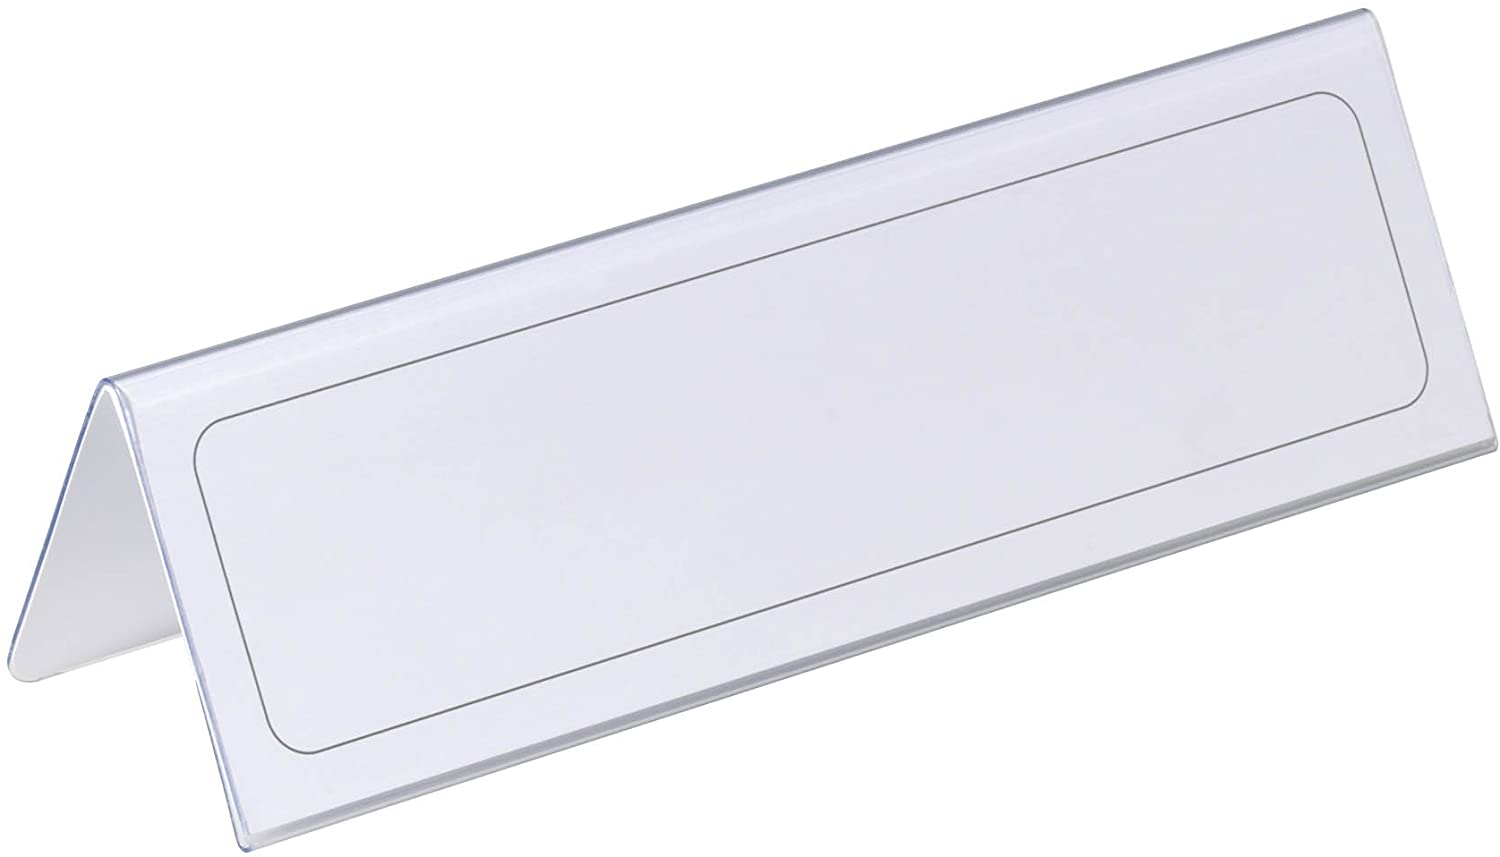 Durable Table Place Name Holder 61x210mm Ref 8052 [Pack of 25]